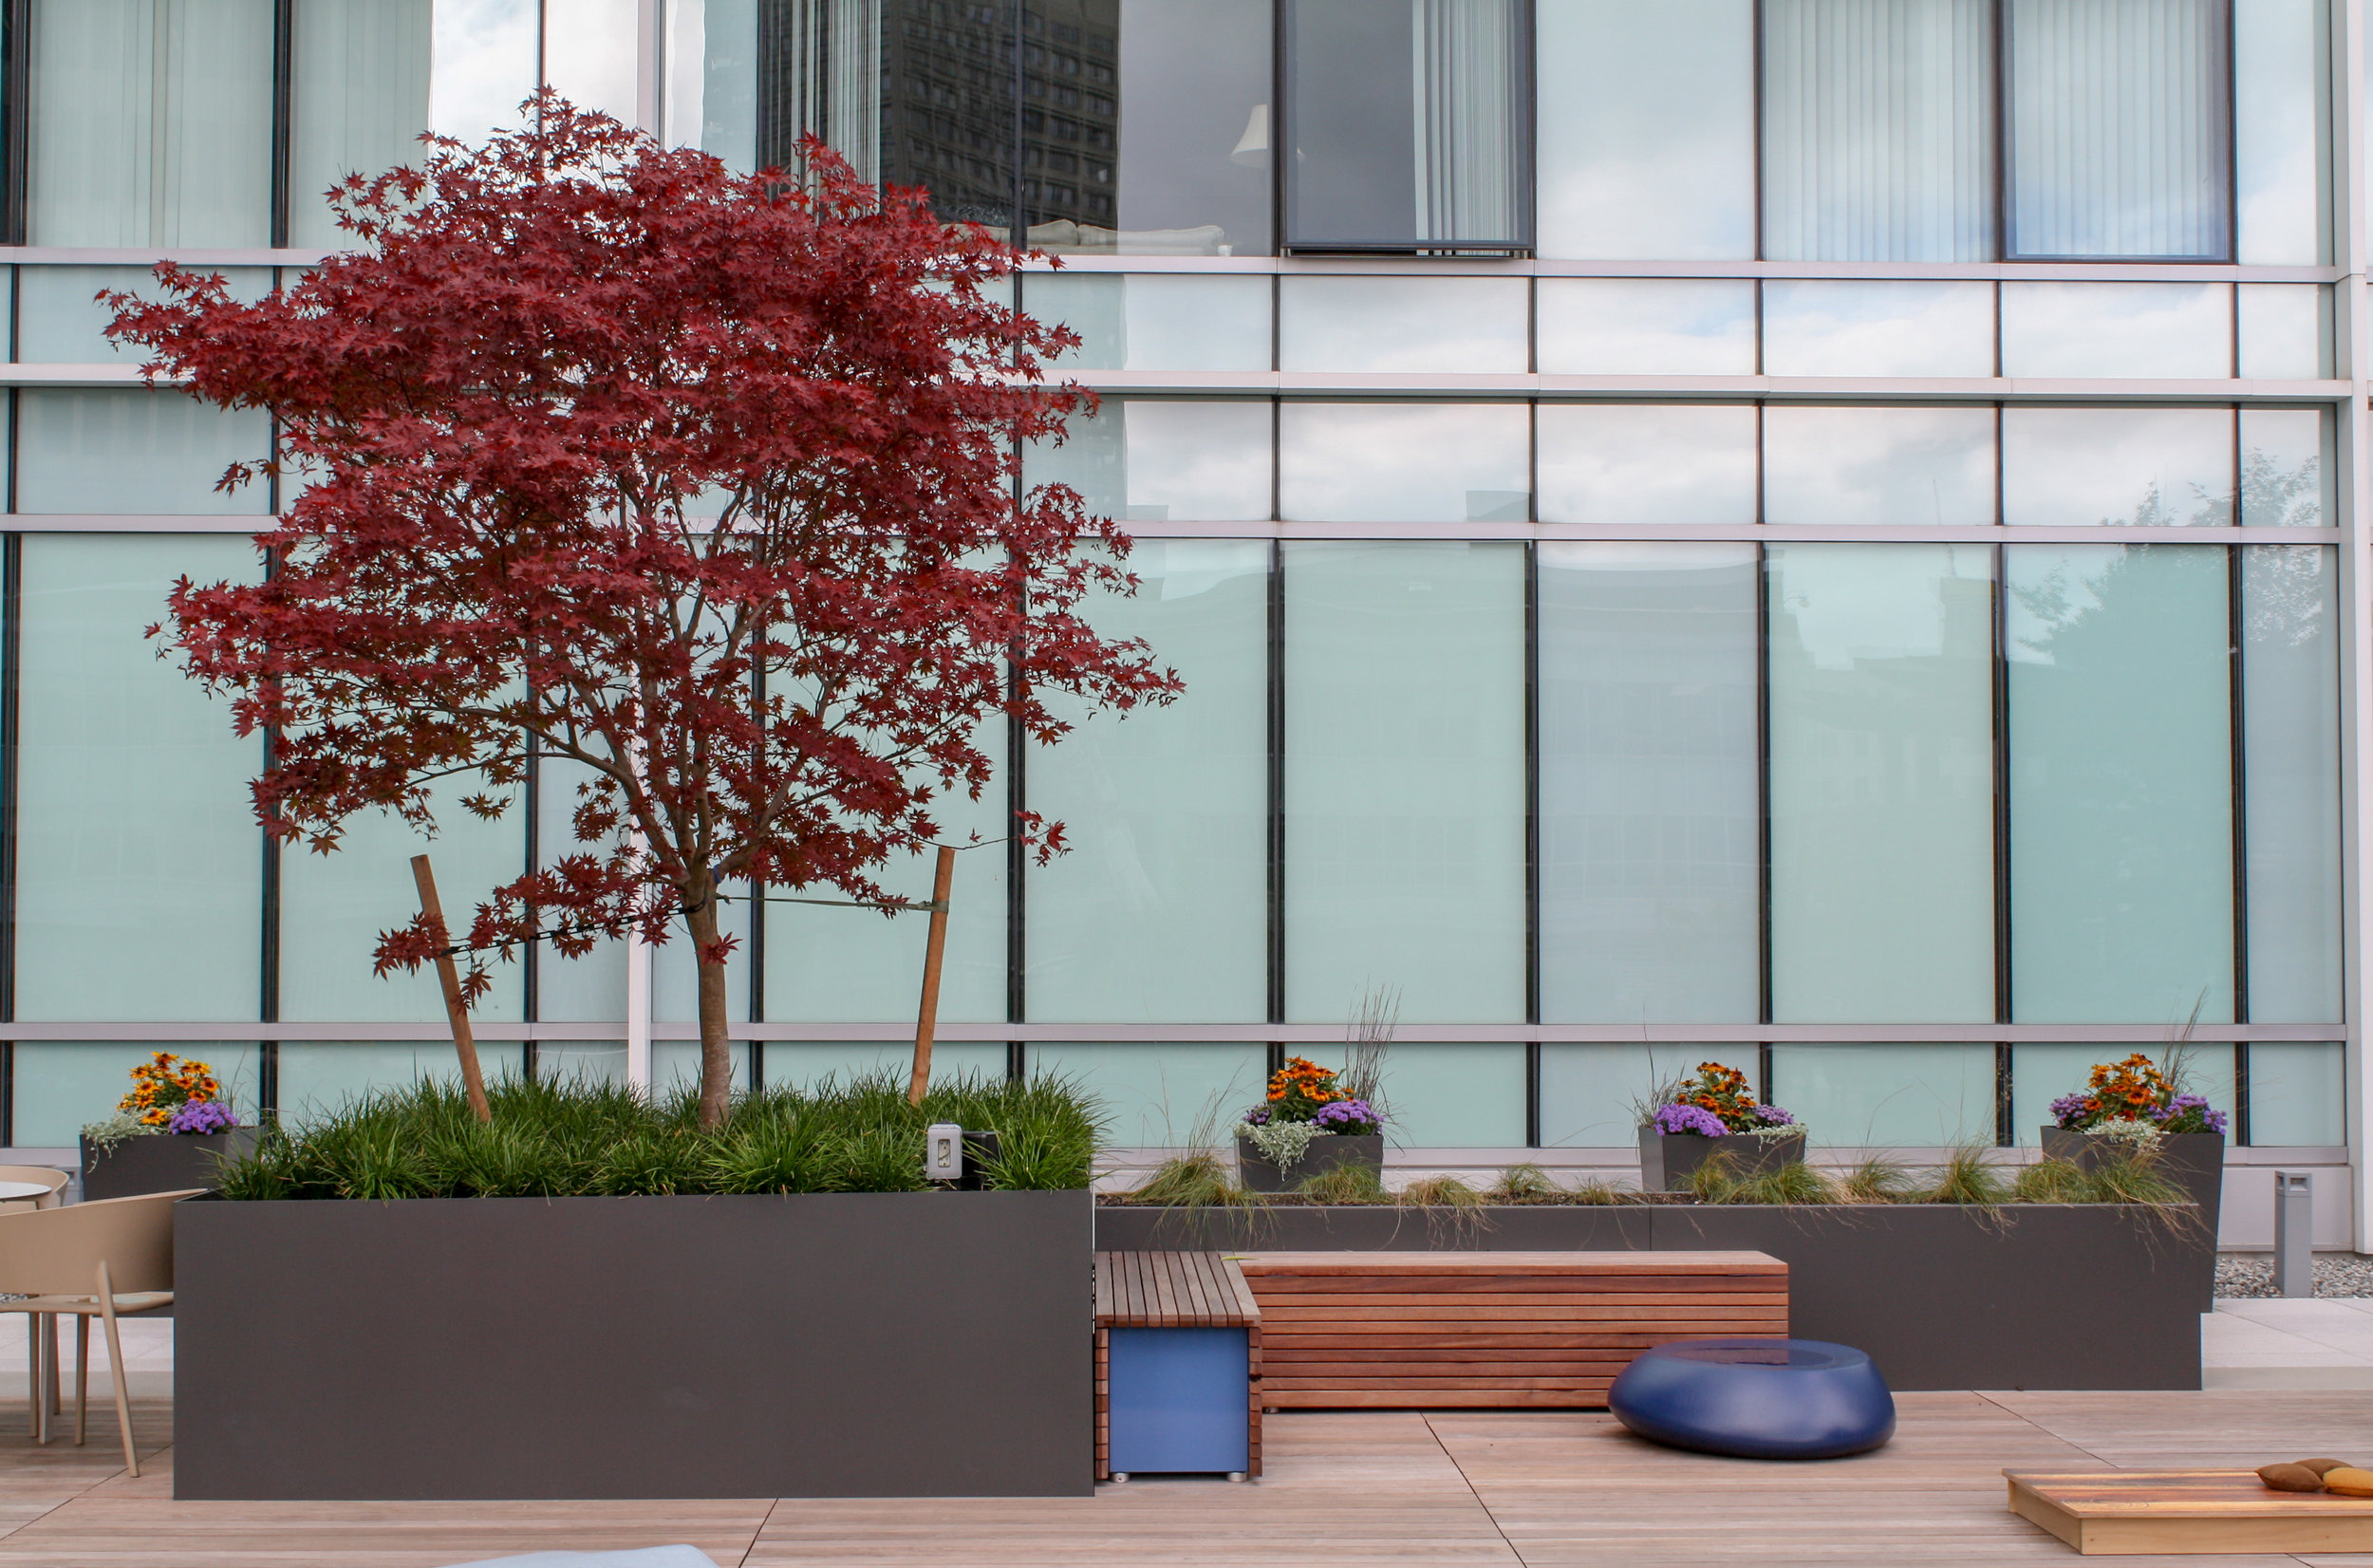 recover-green-roofs-plaza-watermark-24.jpg